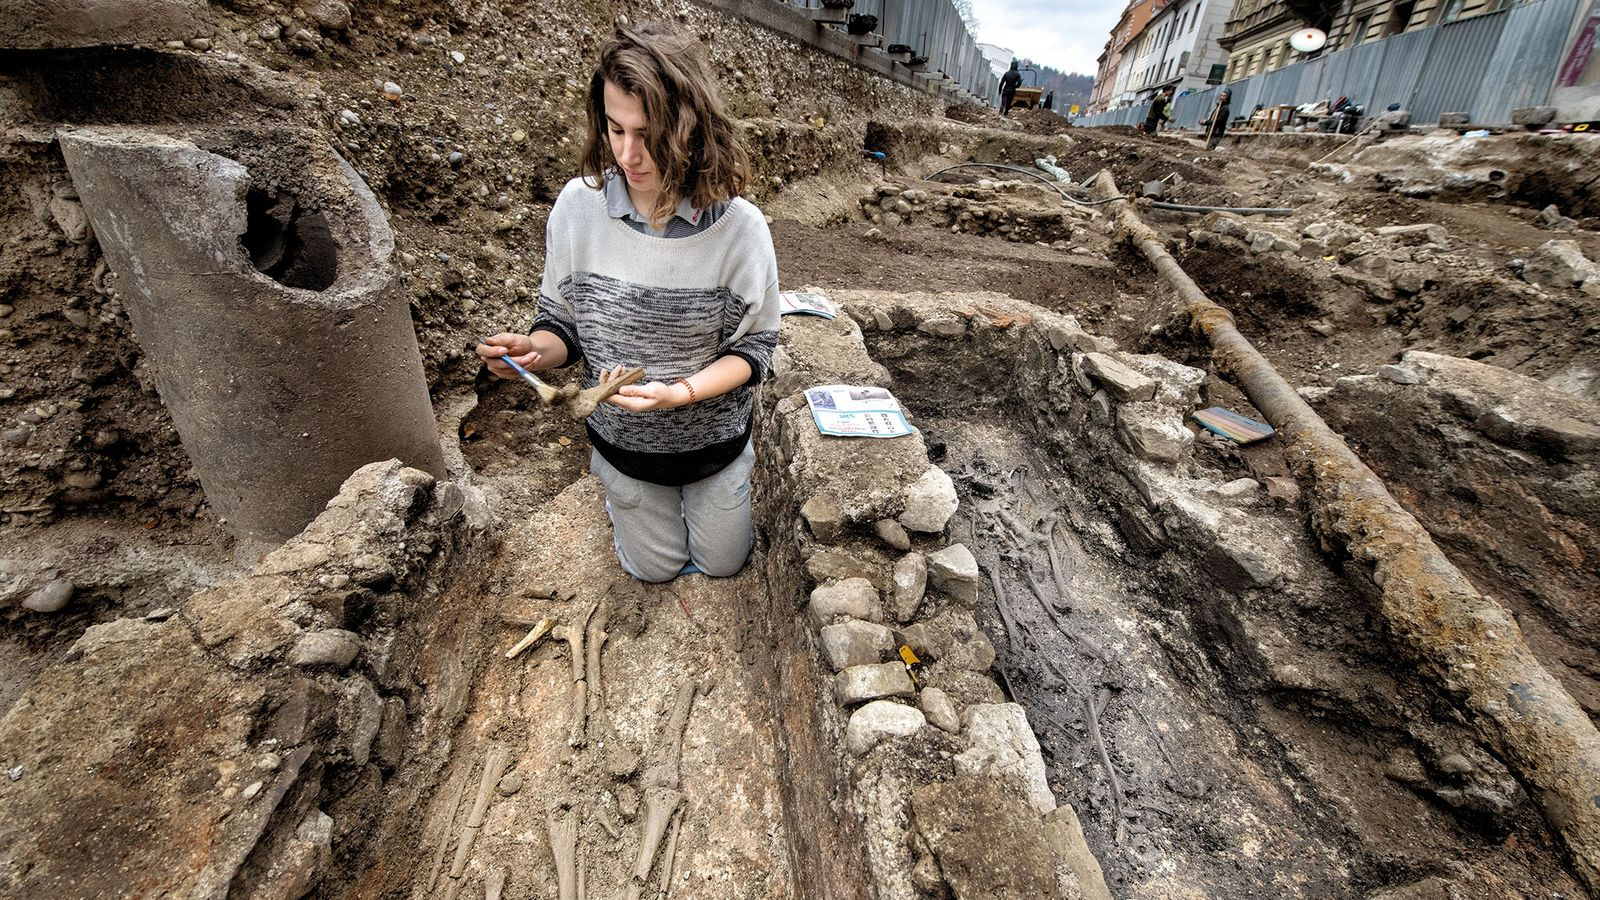 Excavations beneath Gosposvetska Street in downtown Ljubljana revealed remains of the Roman settlement of Emona, which ...